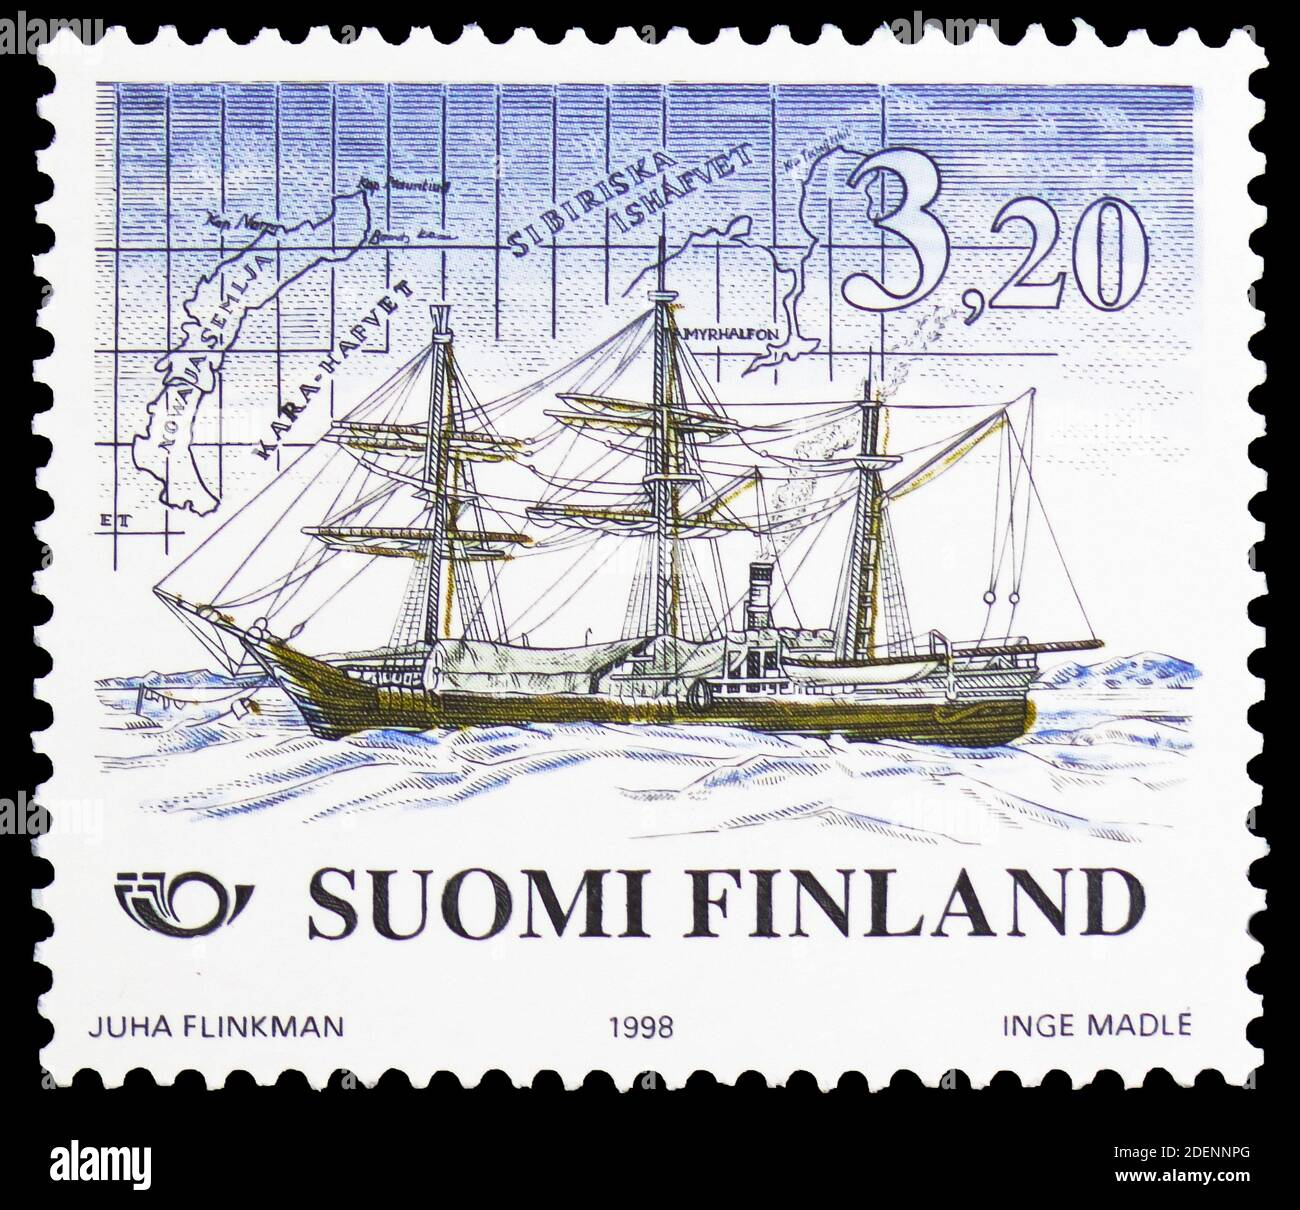 """MOSCOW, RUSSIA - JUNE 28, 2020: Postage stamp printed in Finland shows Expedition ship """"Vega"""" (1878) for Polar exploration, Norden 1998 - Shipping ser Stock Photo"""